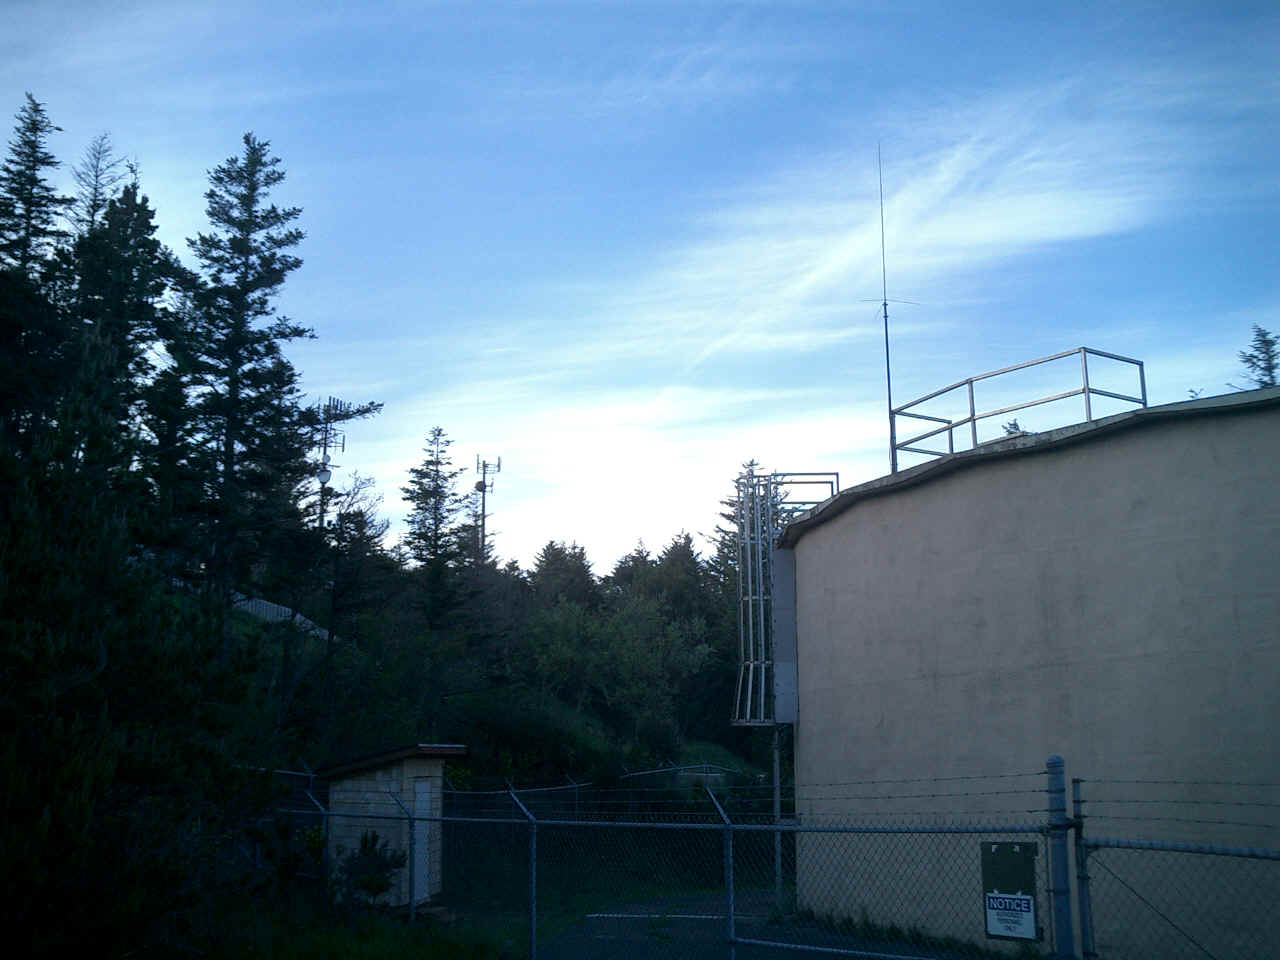 Port Orford, Oregon. POARC 2 Meter Repeater Location at the Port Orford City ...